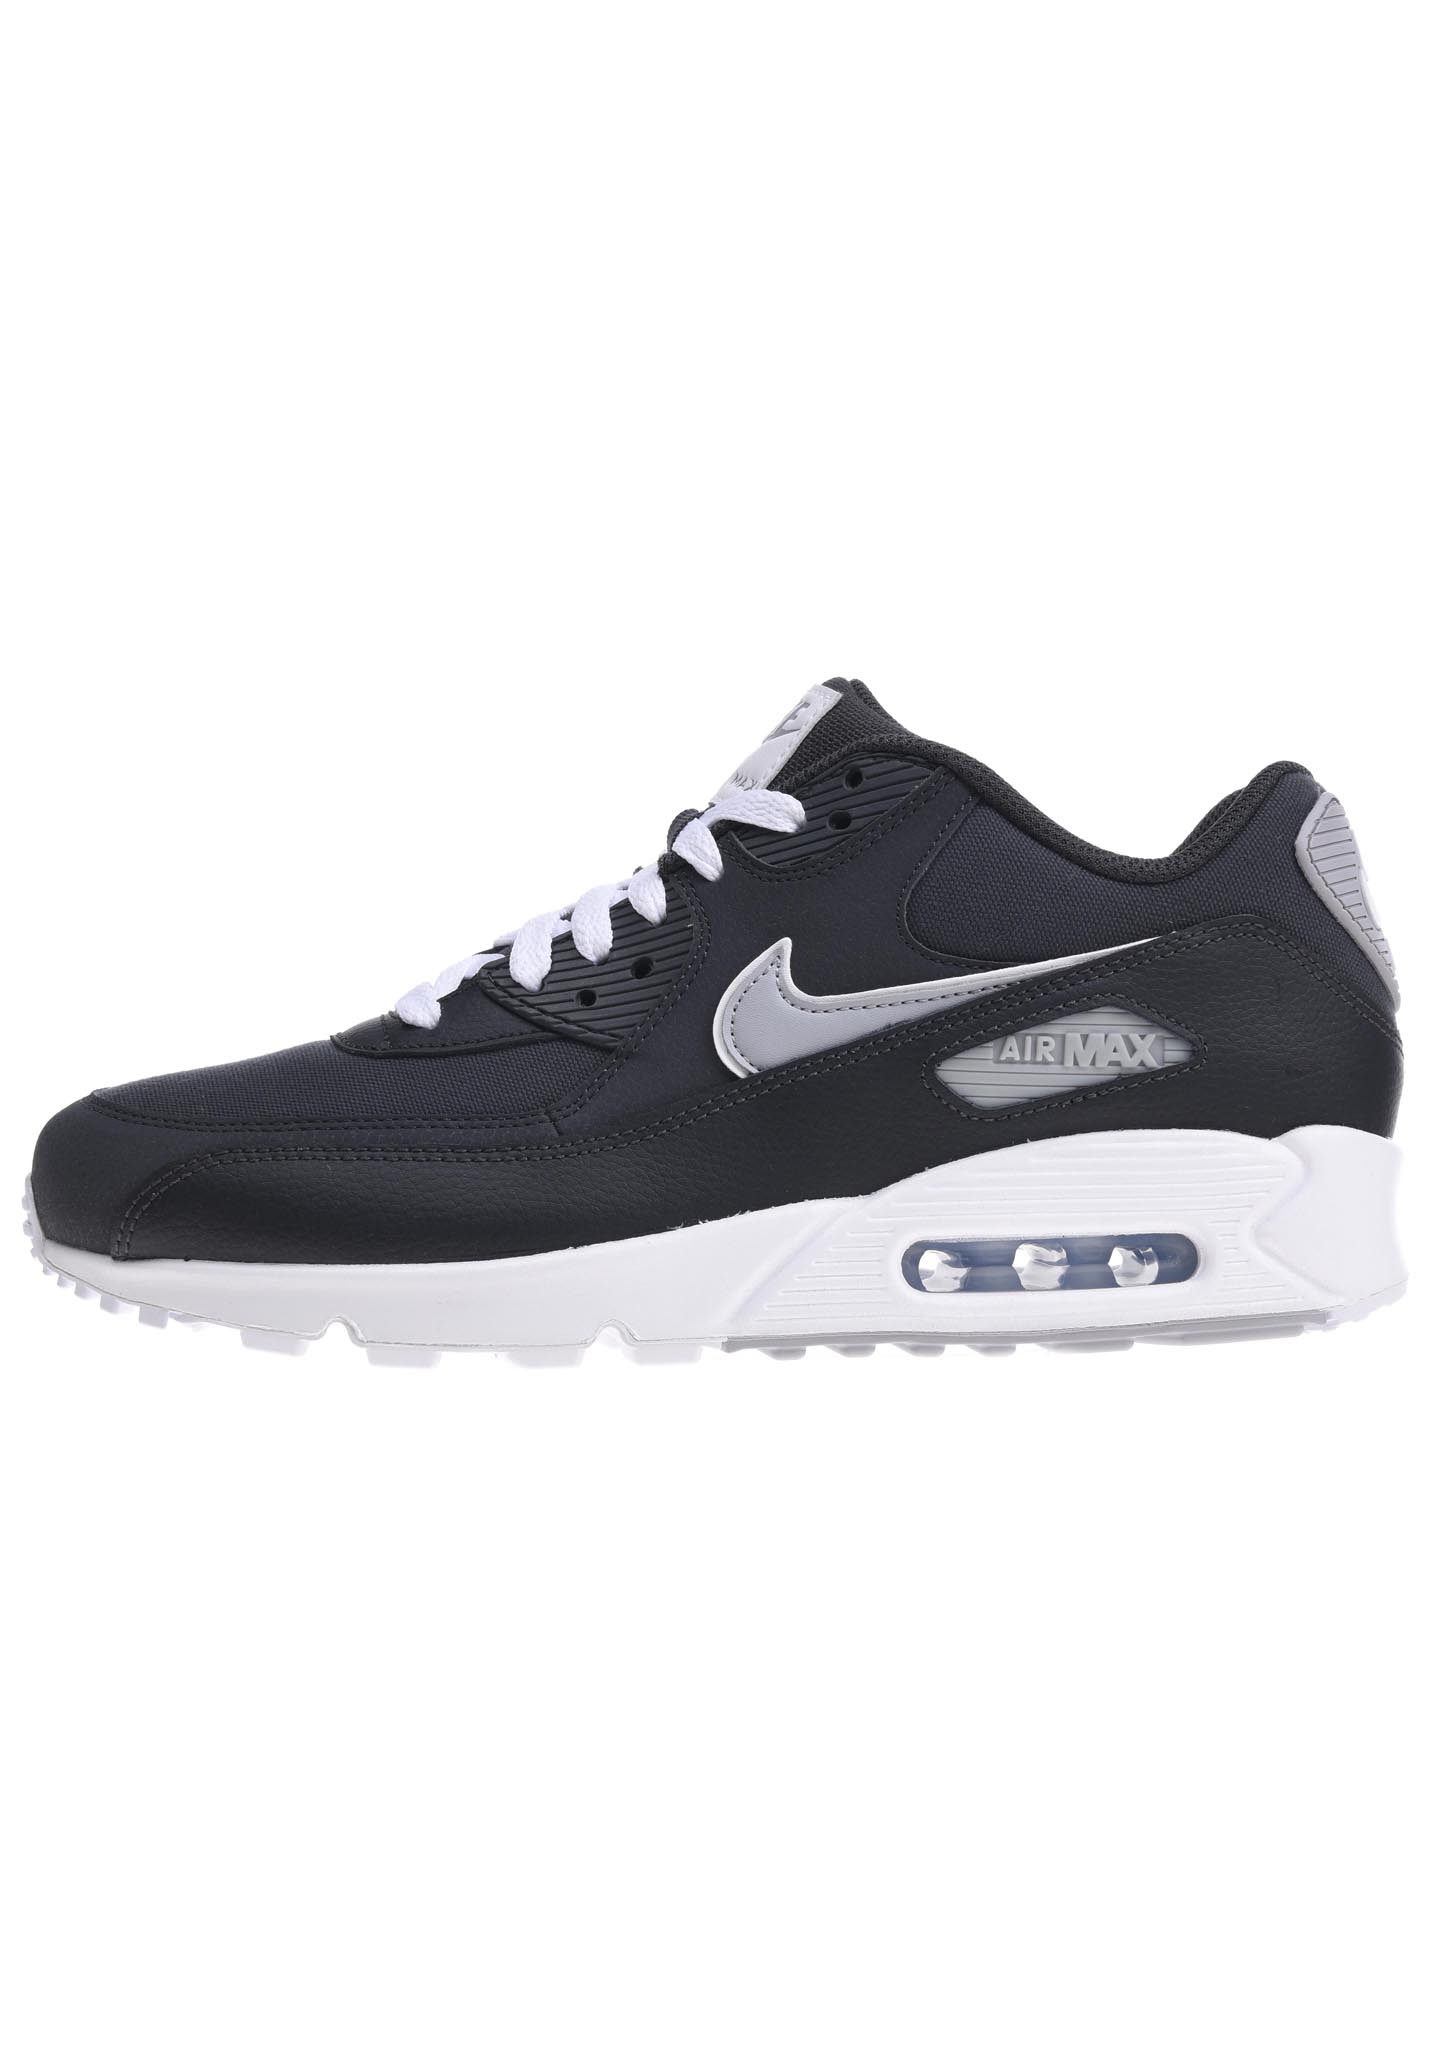 on sale 10f00 b907f NIKE SPORTSWEAR Air Max 90 Essential - Sneaker für Herren - Grau - Planet  Sports